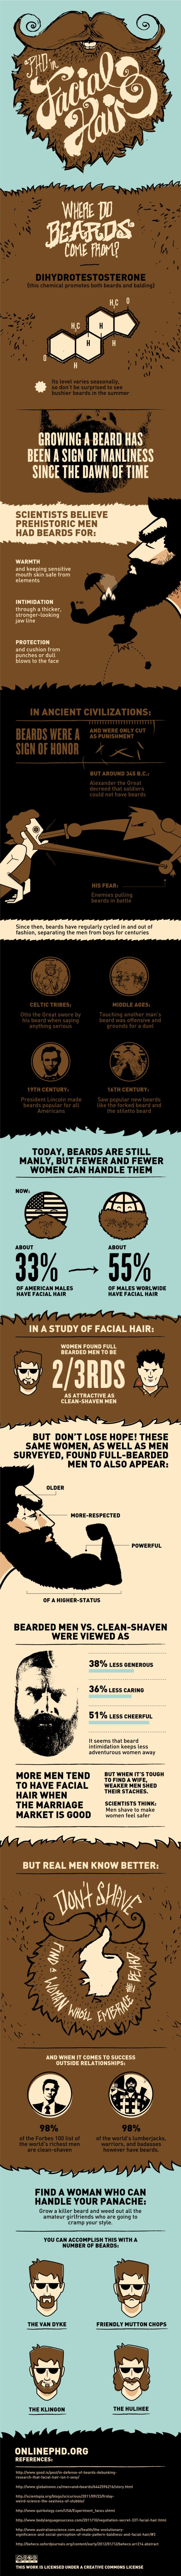 Beards. the facts